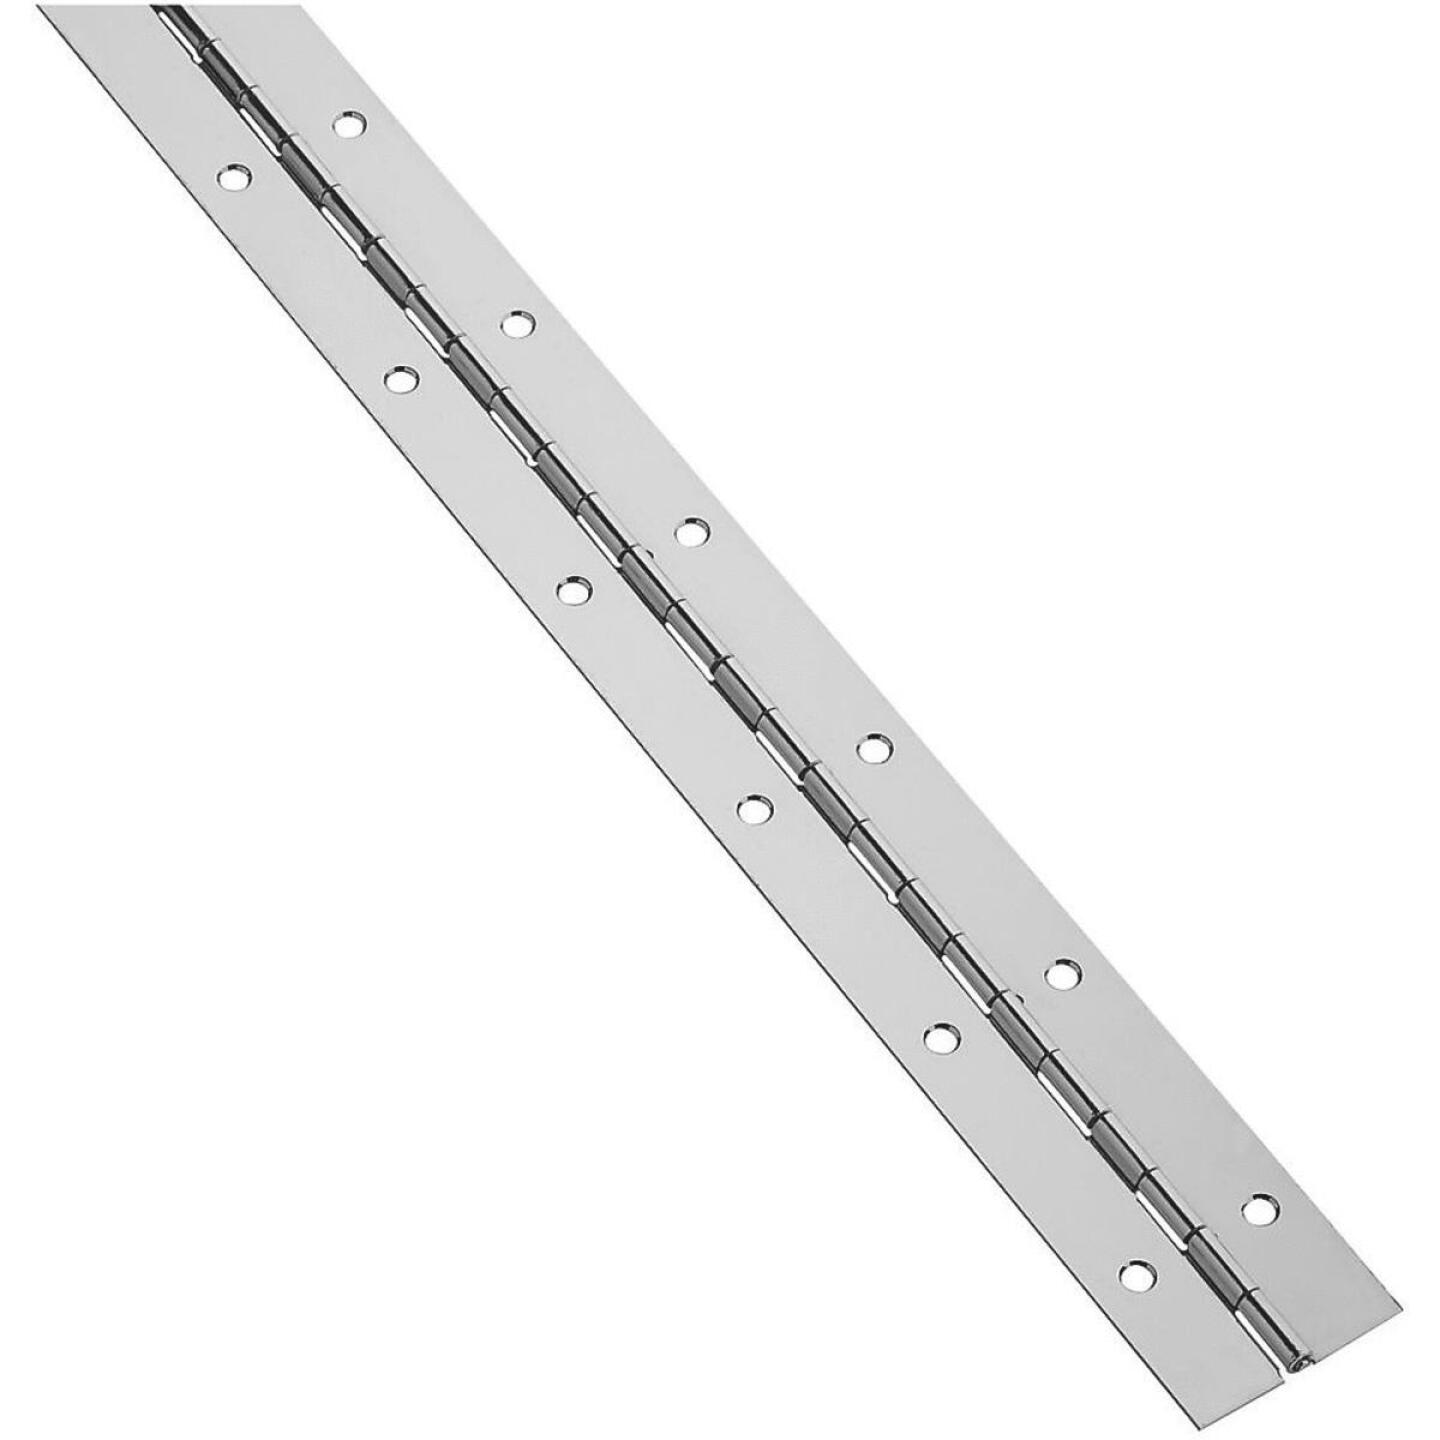 National 1-1/2 In. x 48 In. Stainless Steel Continuous Hinge Image 1